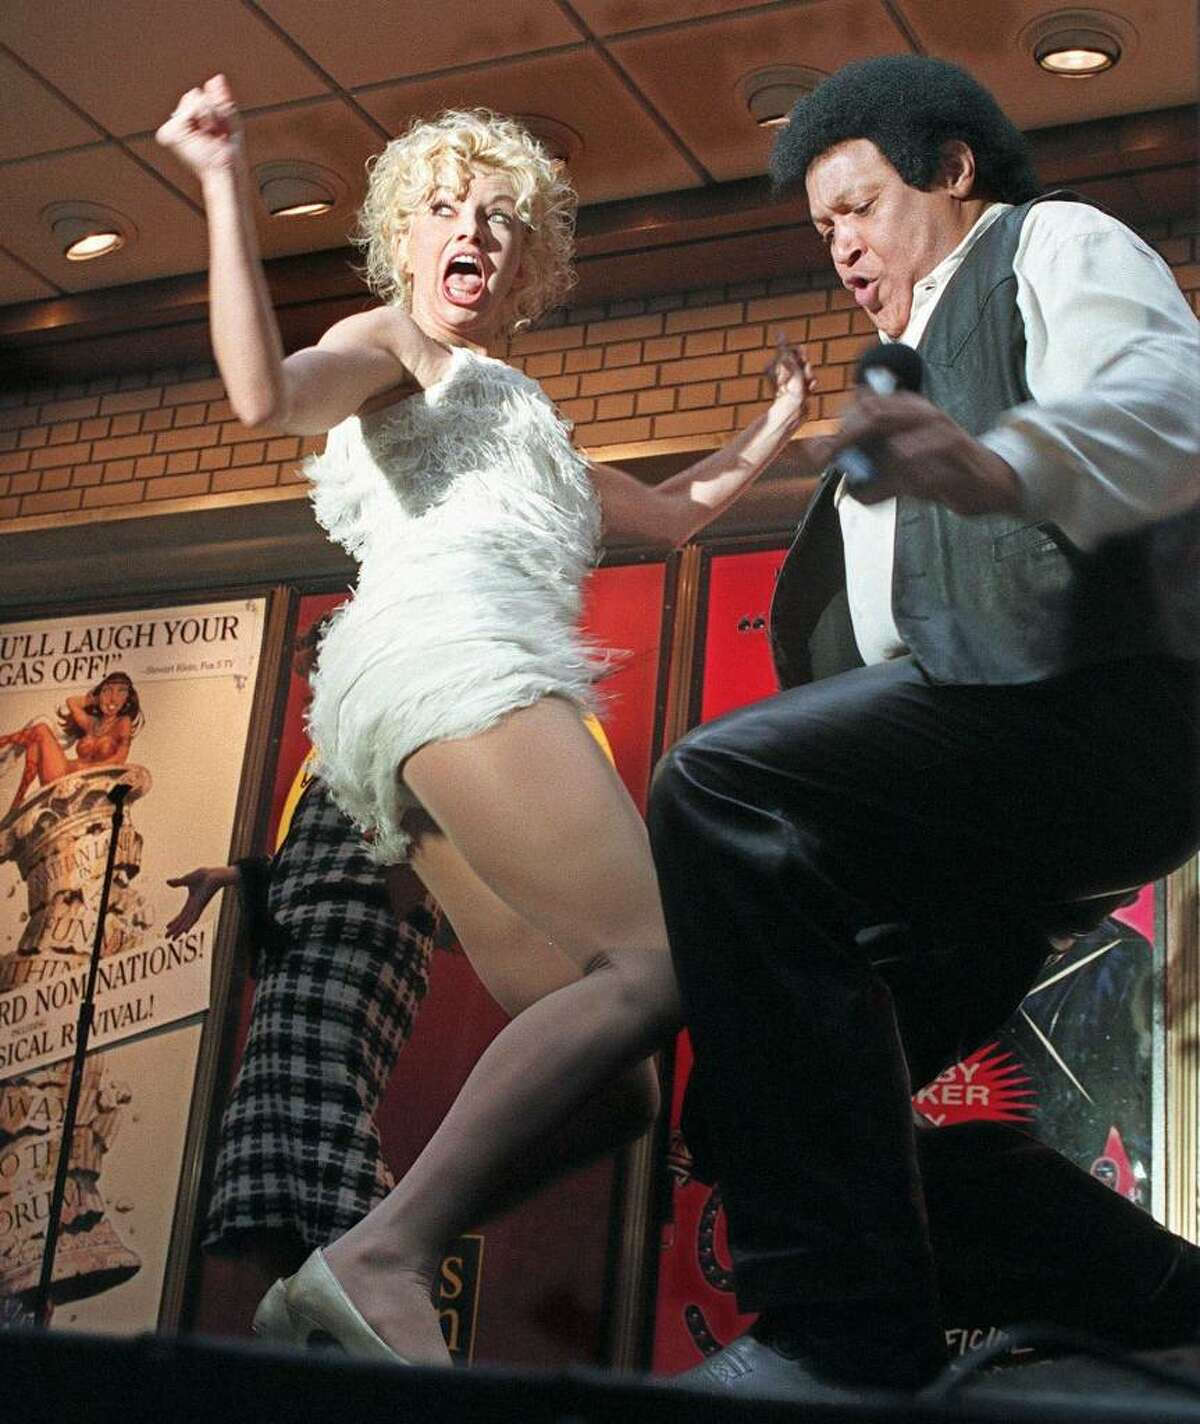 DeLee Lively, left, and Chubby Checker twist in New York in 1996. (AP Photo/Richard Drew)